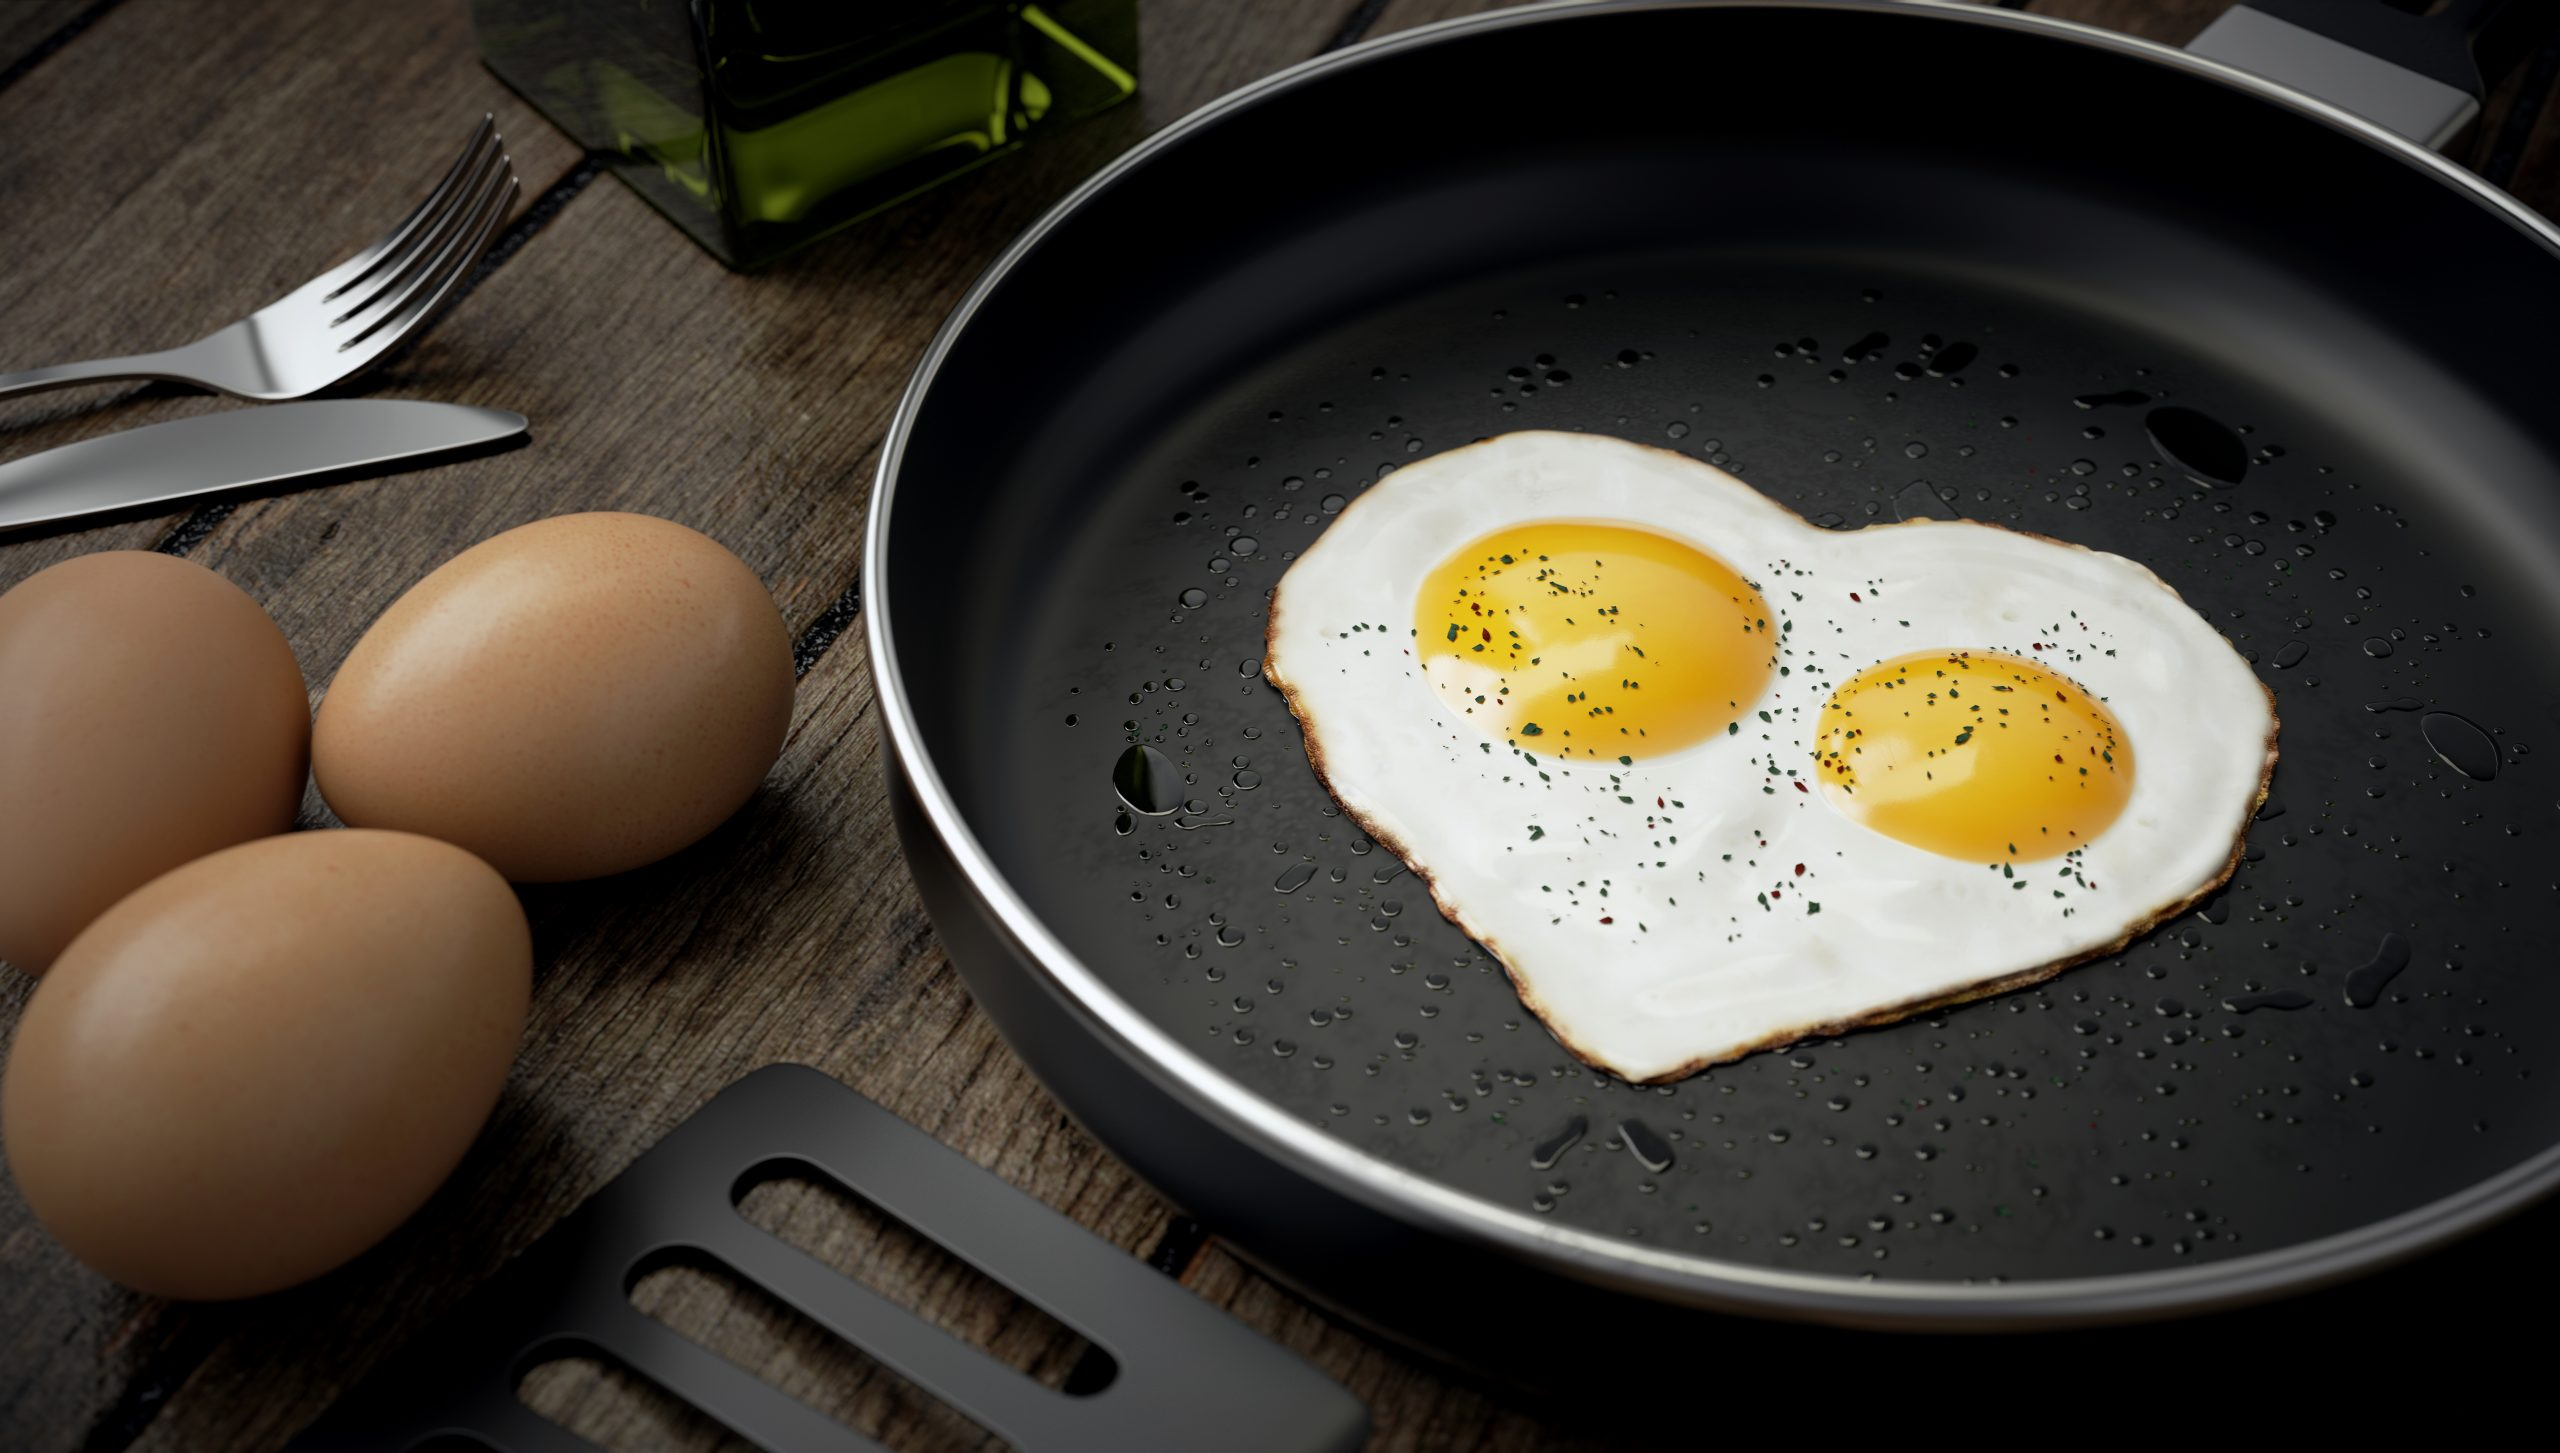 how to make eggs not stick